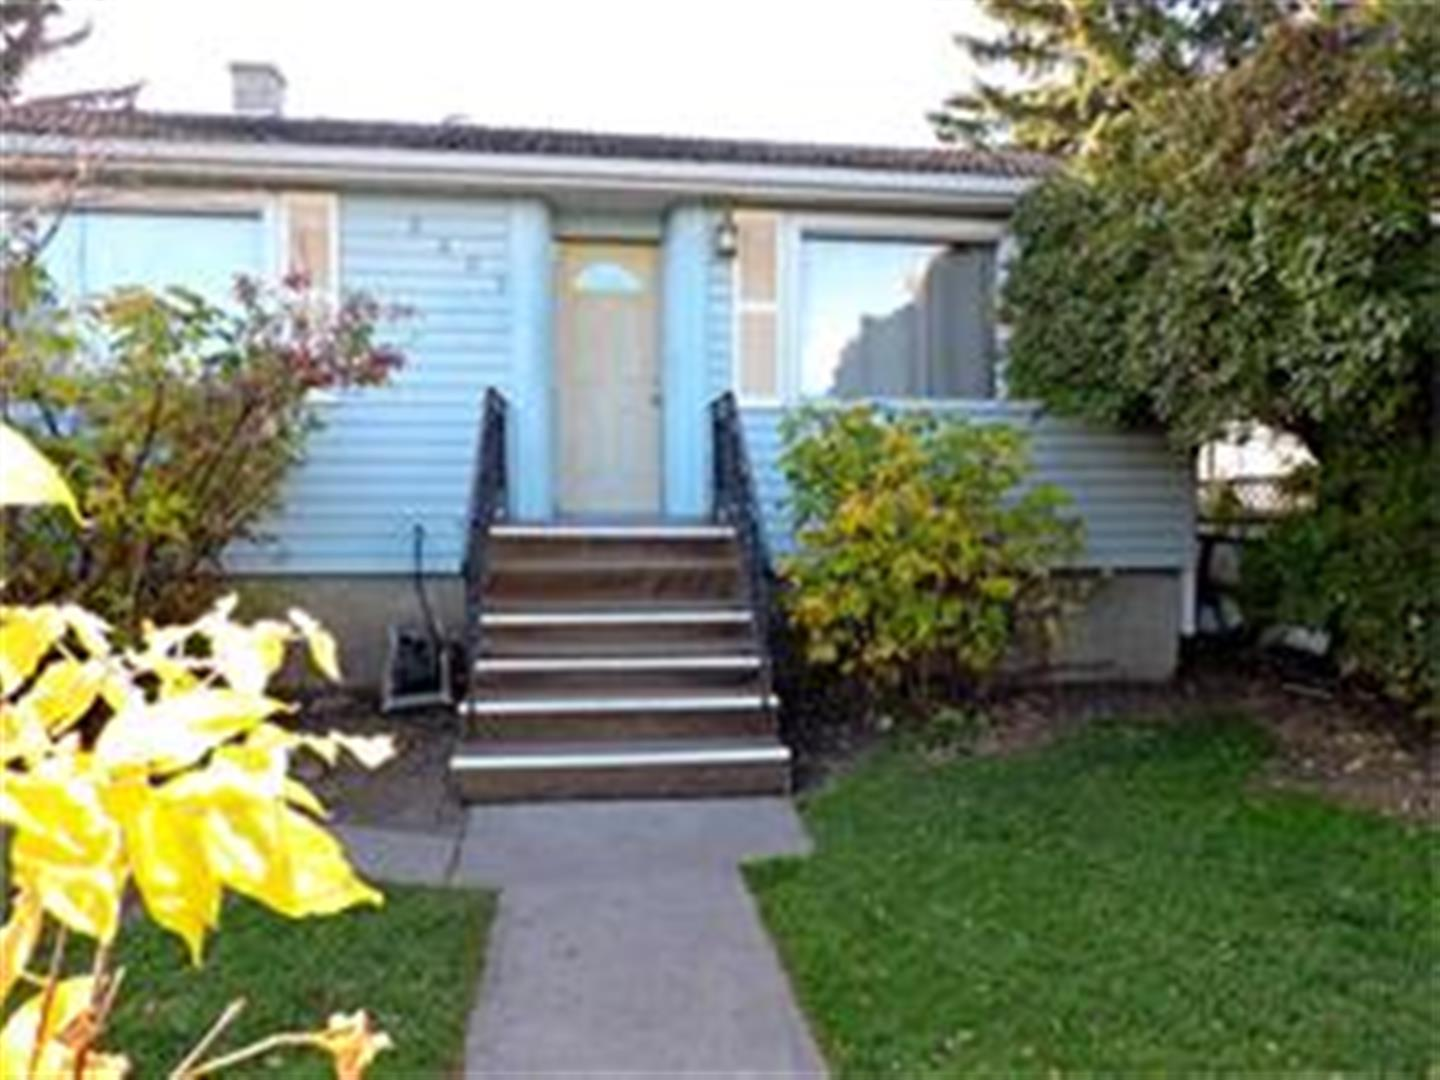 NEWLY RENOVATED BUNGALOW JUST OFF CENTRE ST FOR RENT!